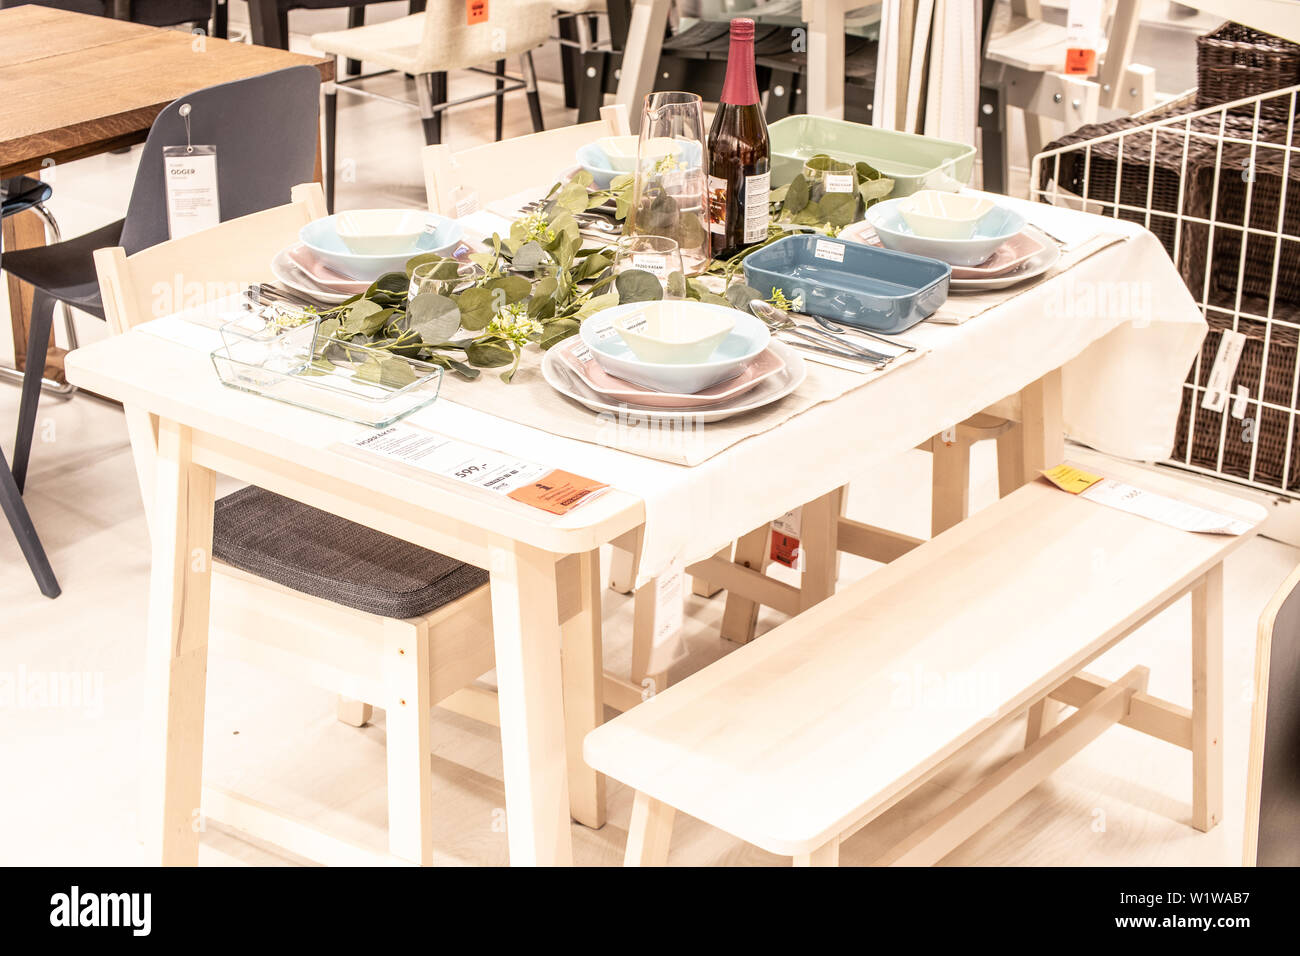 lodz poland jan 2019 exhibition interior ikea store modern dining table chairs tableware ikea sells ready to assemble furniture home accessories image